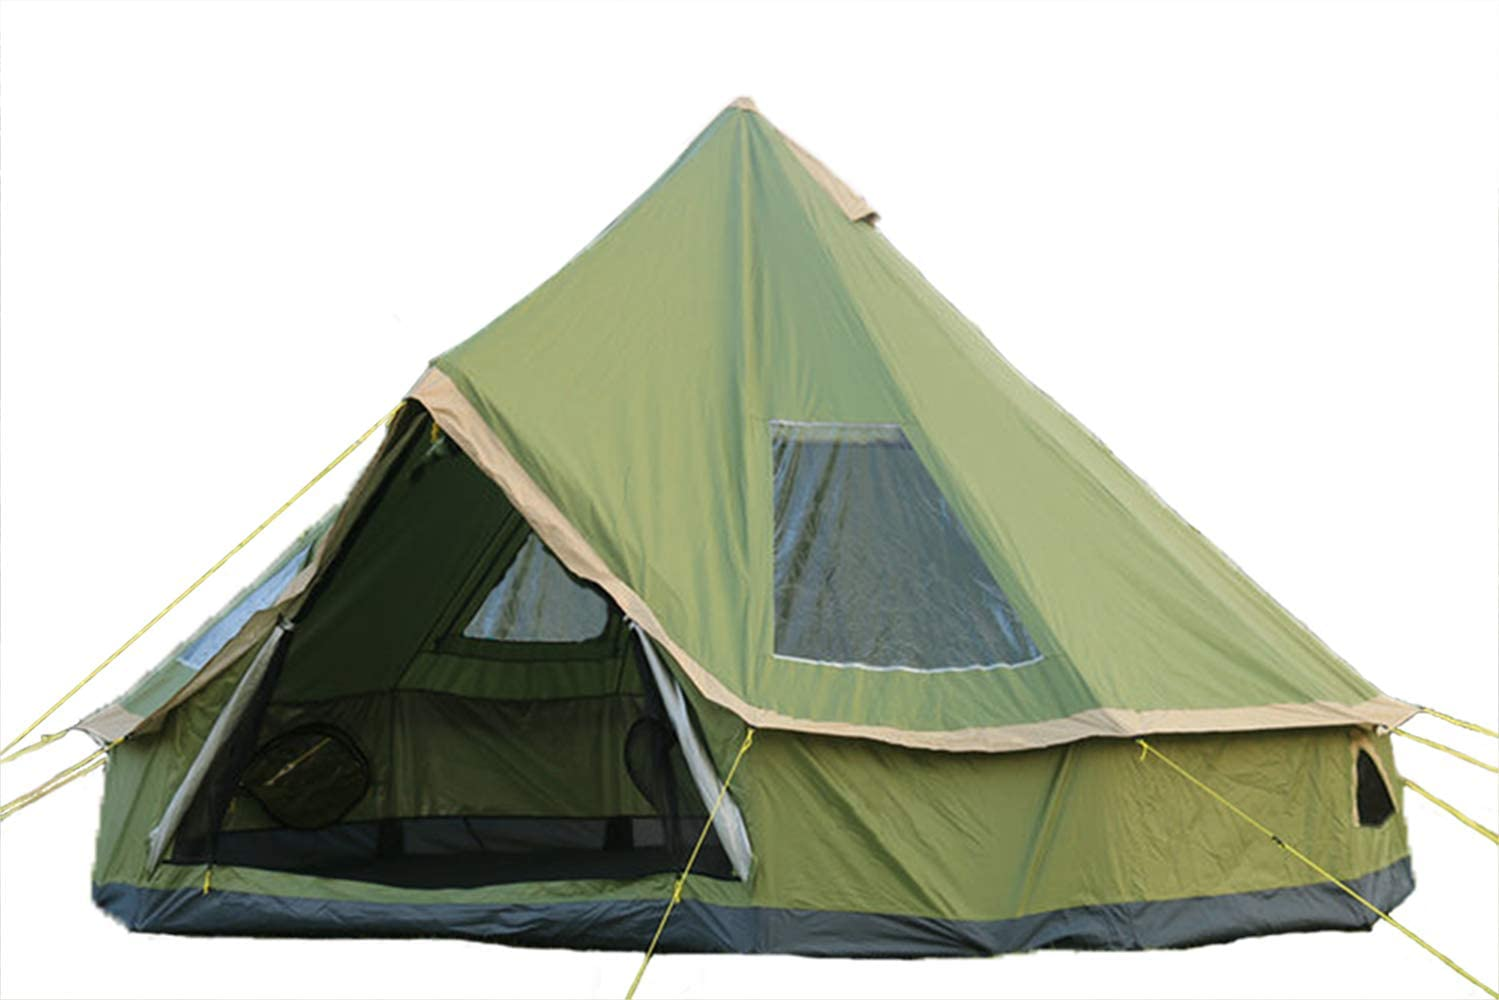 Danchel Tipi Family Tent for Camping